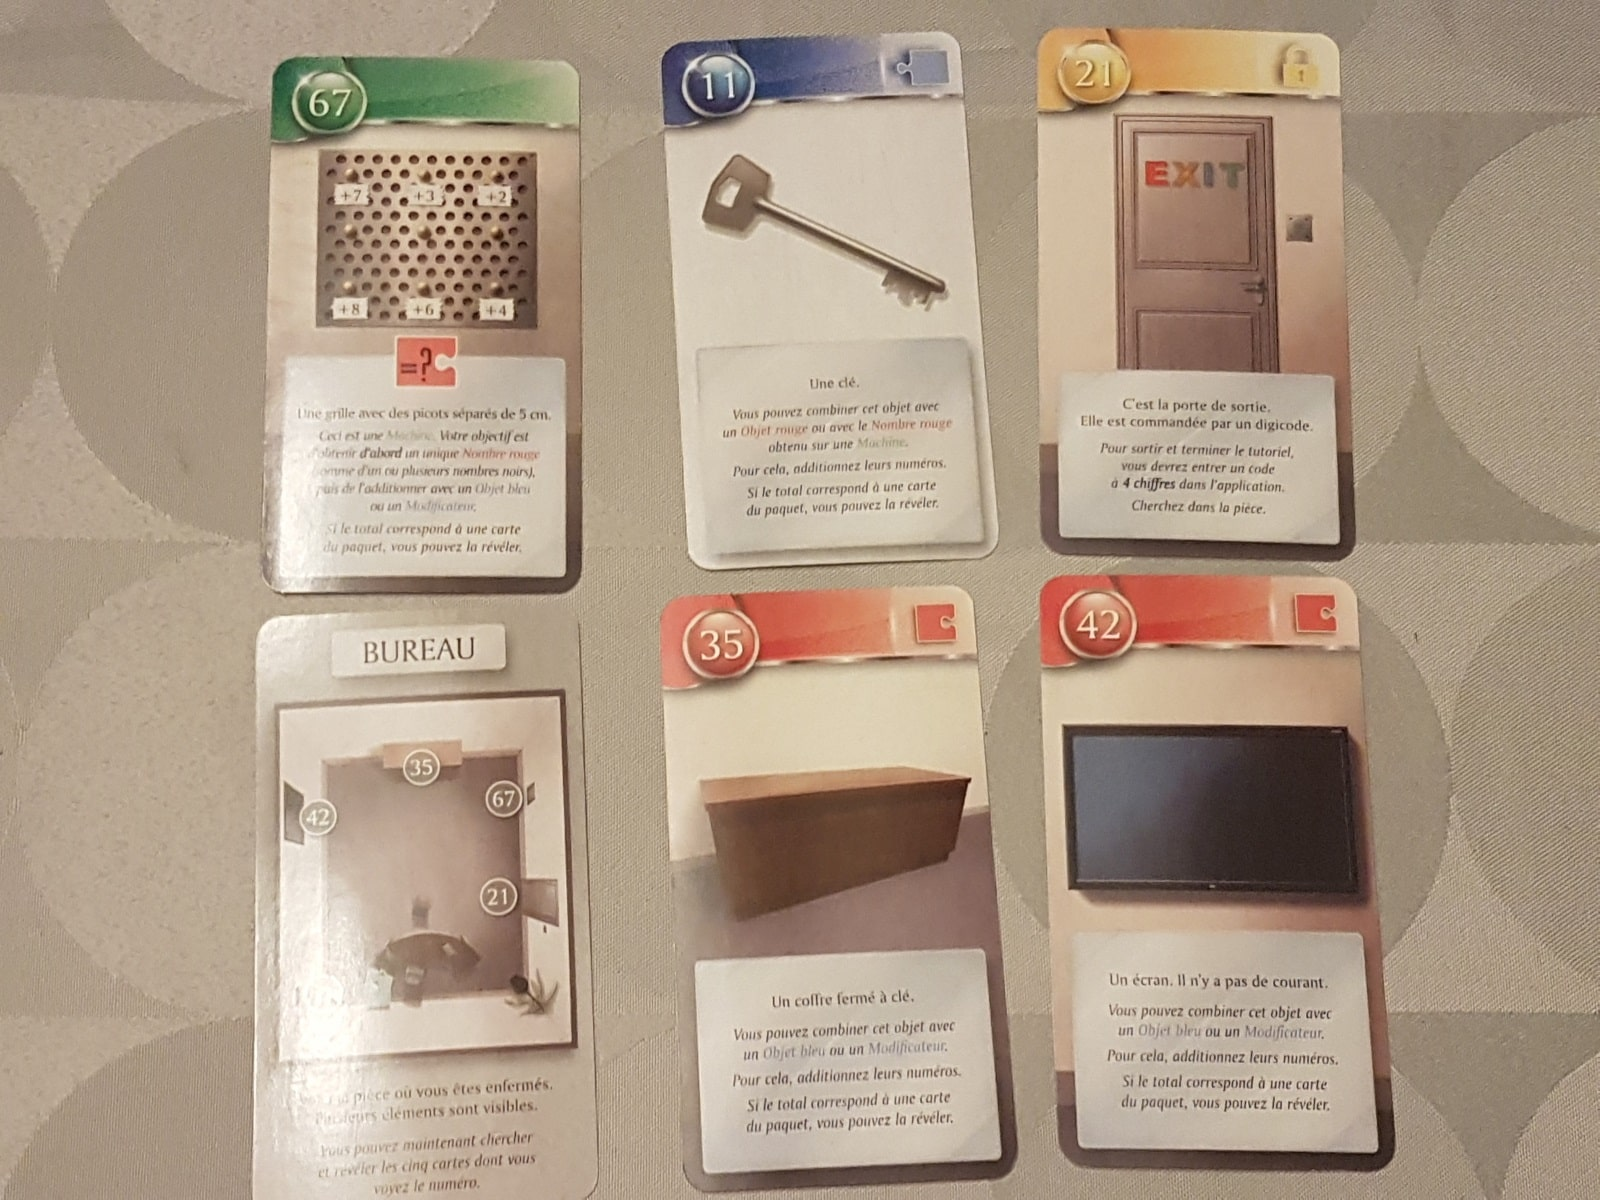 unlock escape adventures Toutes les cartes